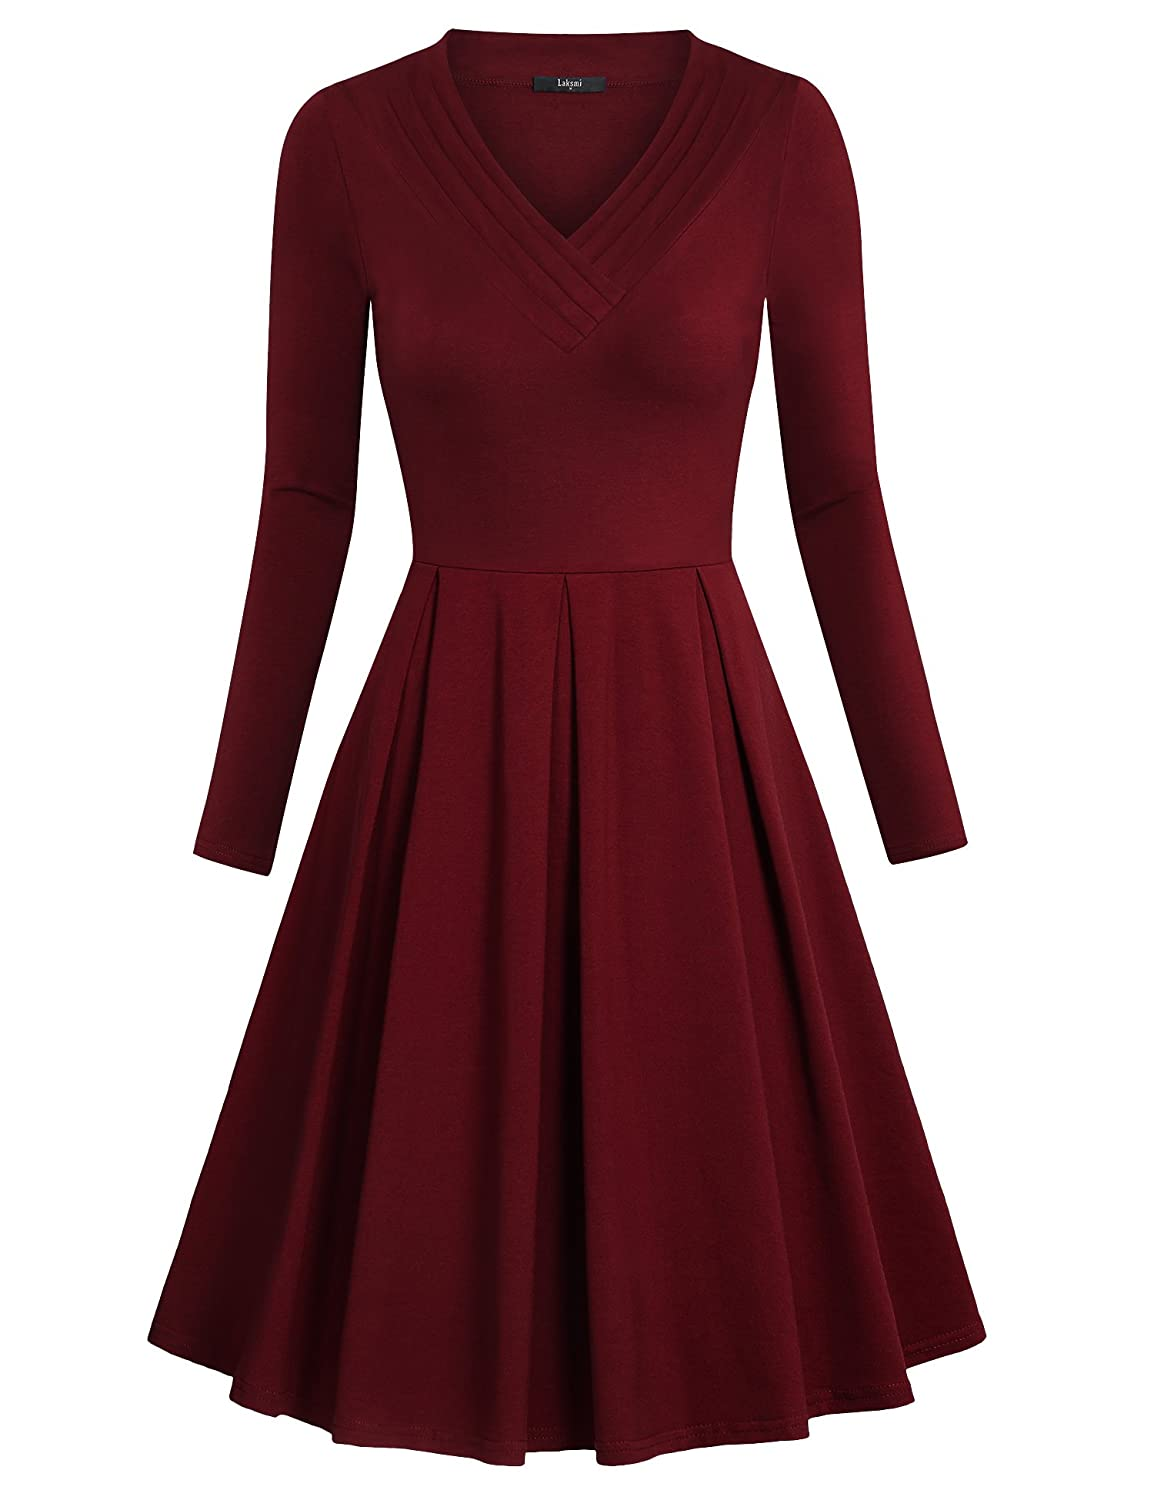 4b6ed20200c6 Long Sleeve/Knee Length/Empire Waist/Pleated V Neck/Solid Color/Slim  Fit/Fit and Flare Dress/Pleated Casual Dress/Fall Dress for Women